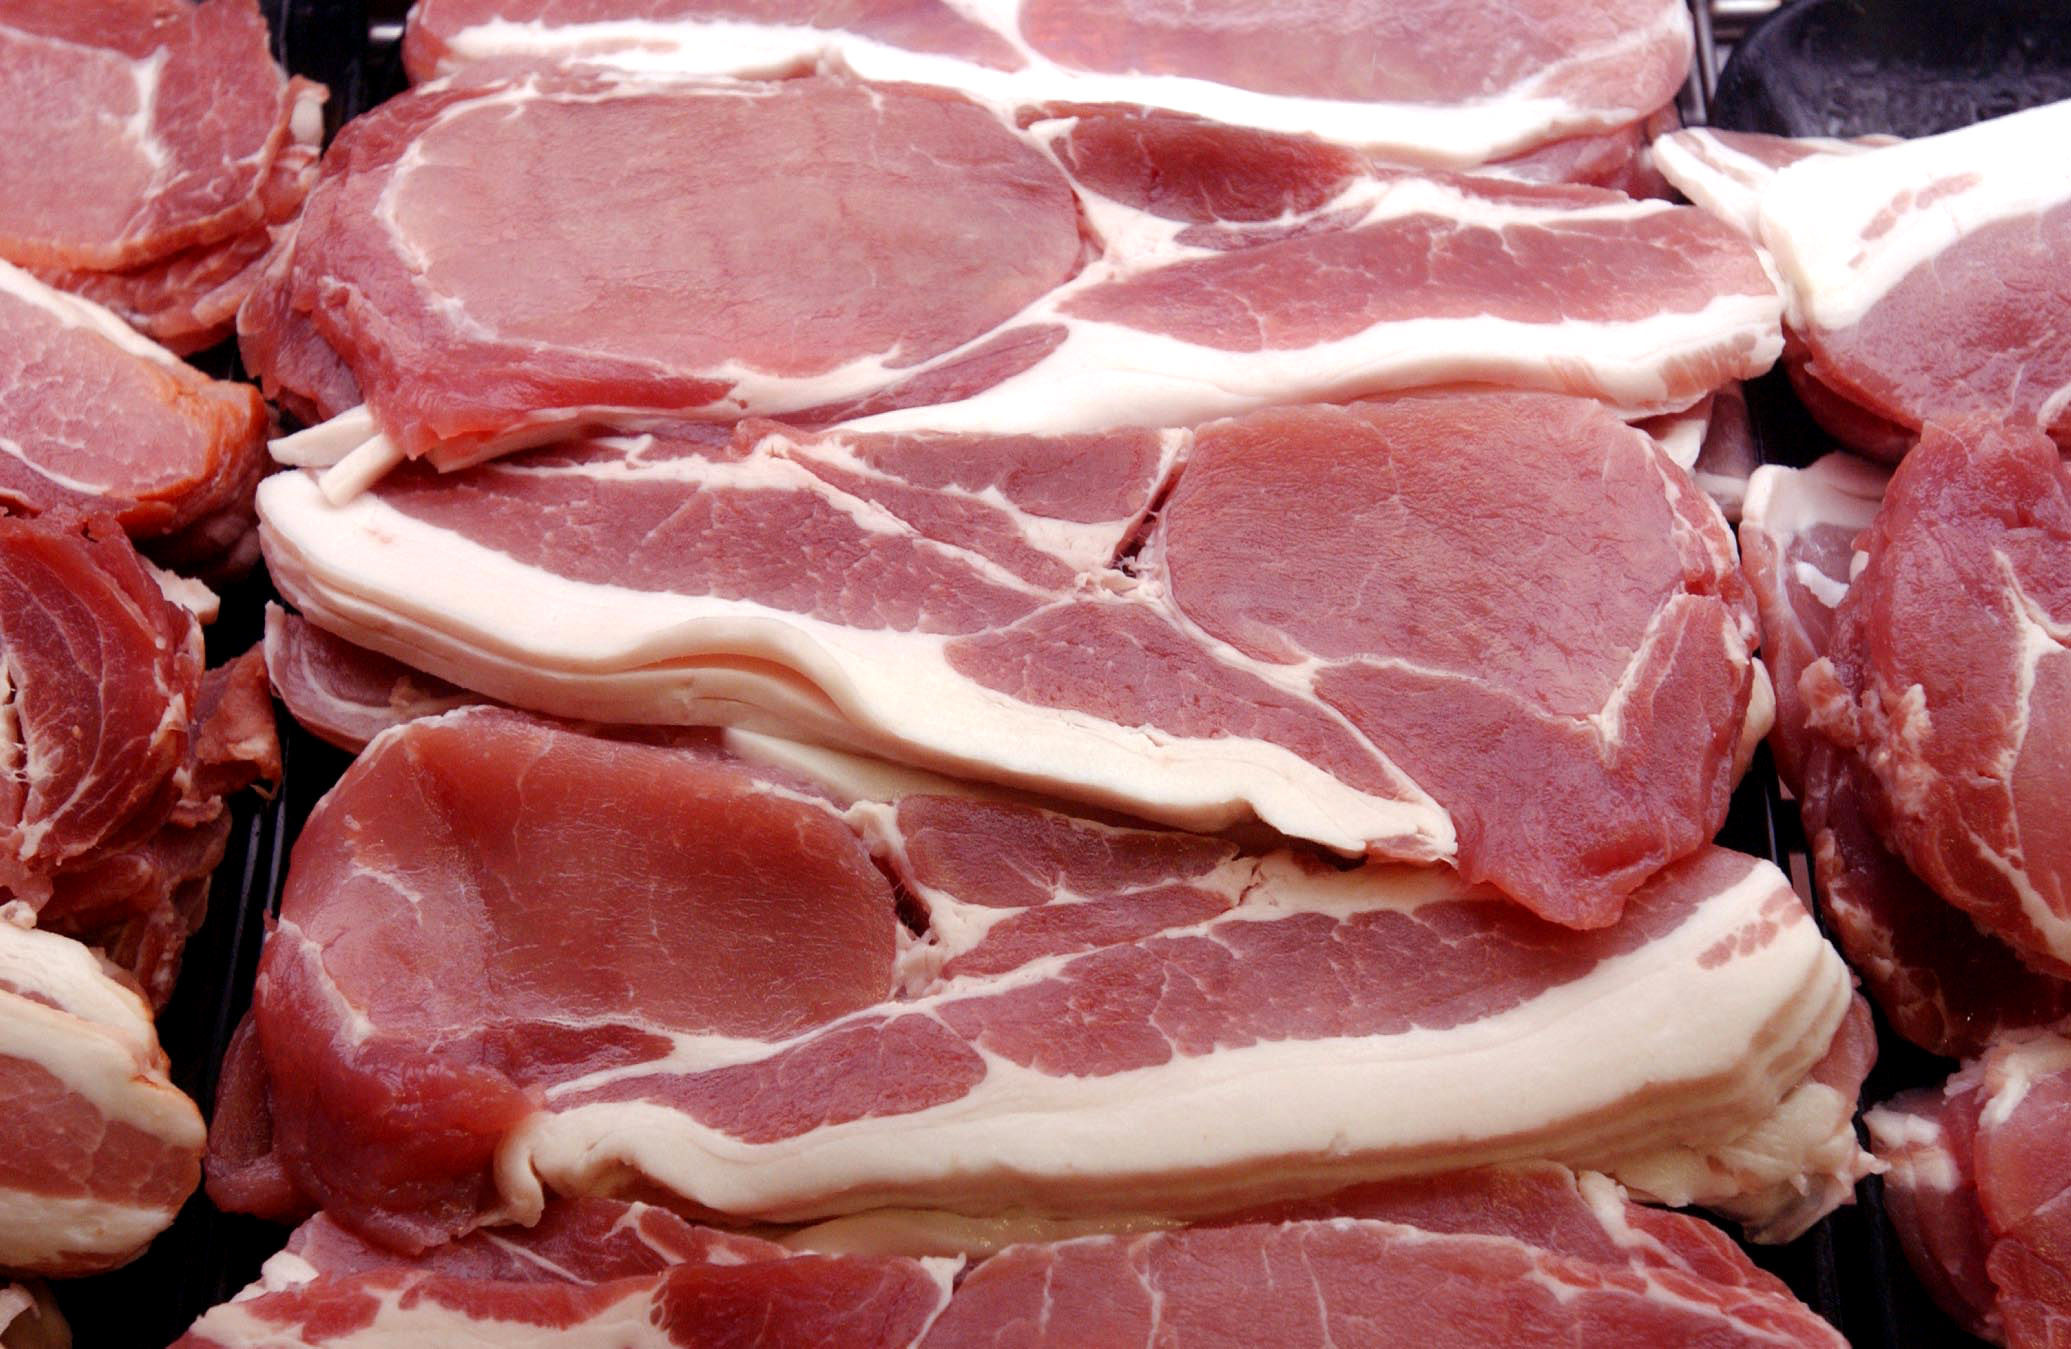 There is strong evidence that eating processed meat, such as bacon, is a cause of bowel cancer